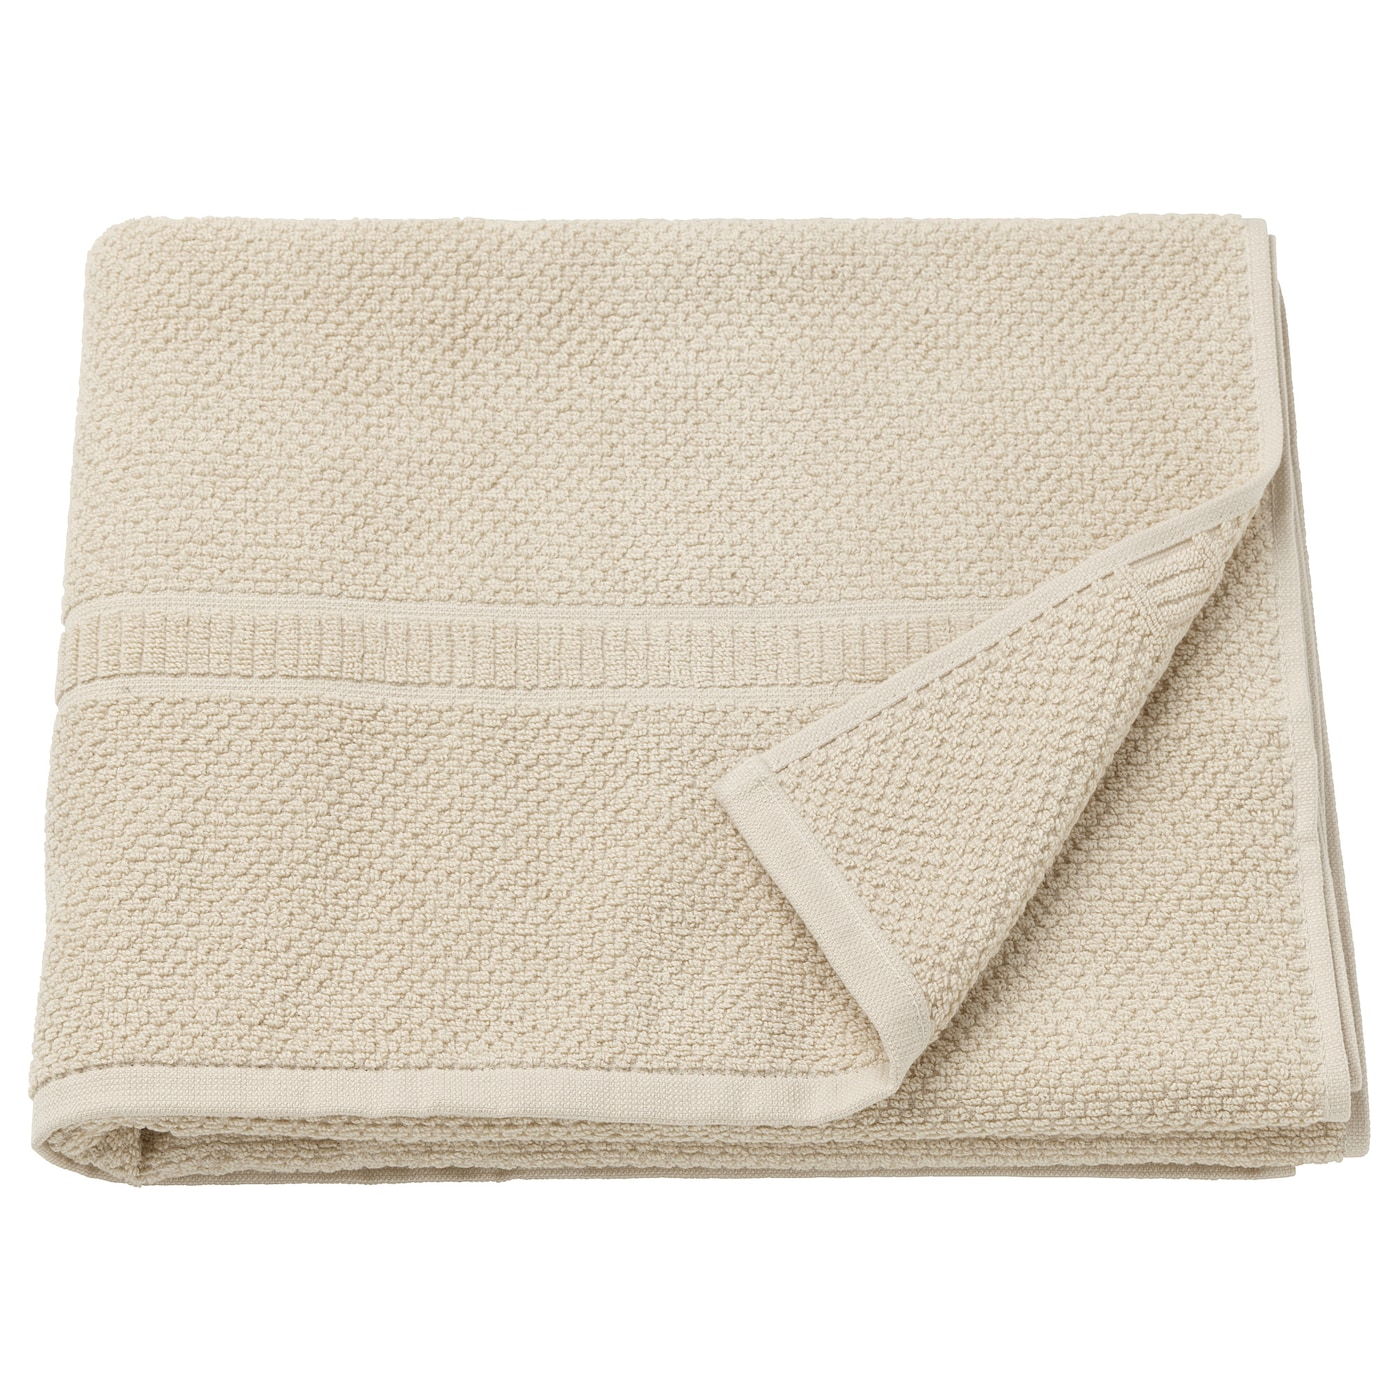 IKEA FRÄJEN bath towel A terry towel that is soft and absorbent (weight 390 g/m²).